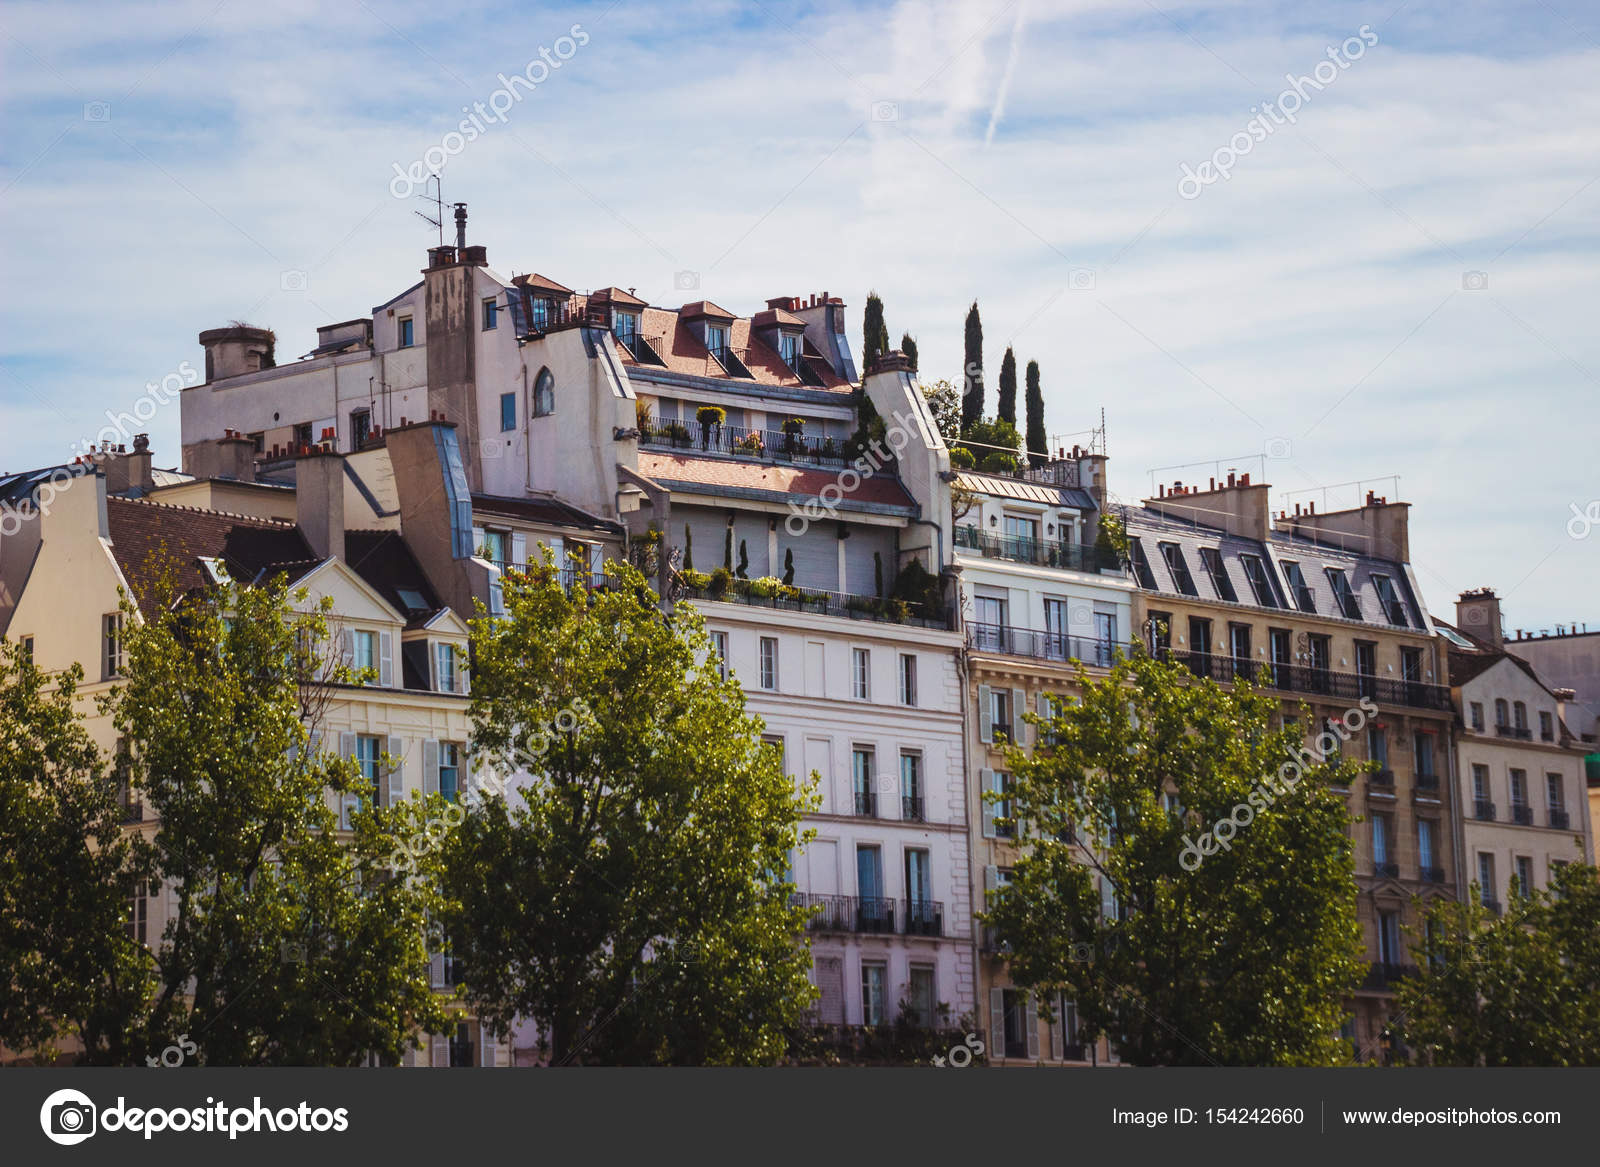 Traditional French Architecture House In Paris Parisian Building Typical Generic Houses France Photo Stock By Fayethequeen93